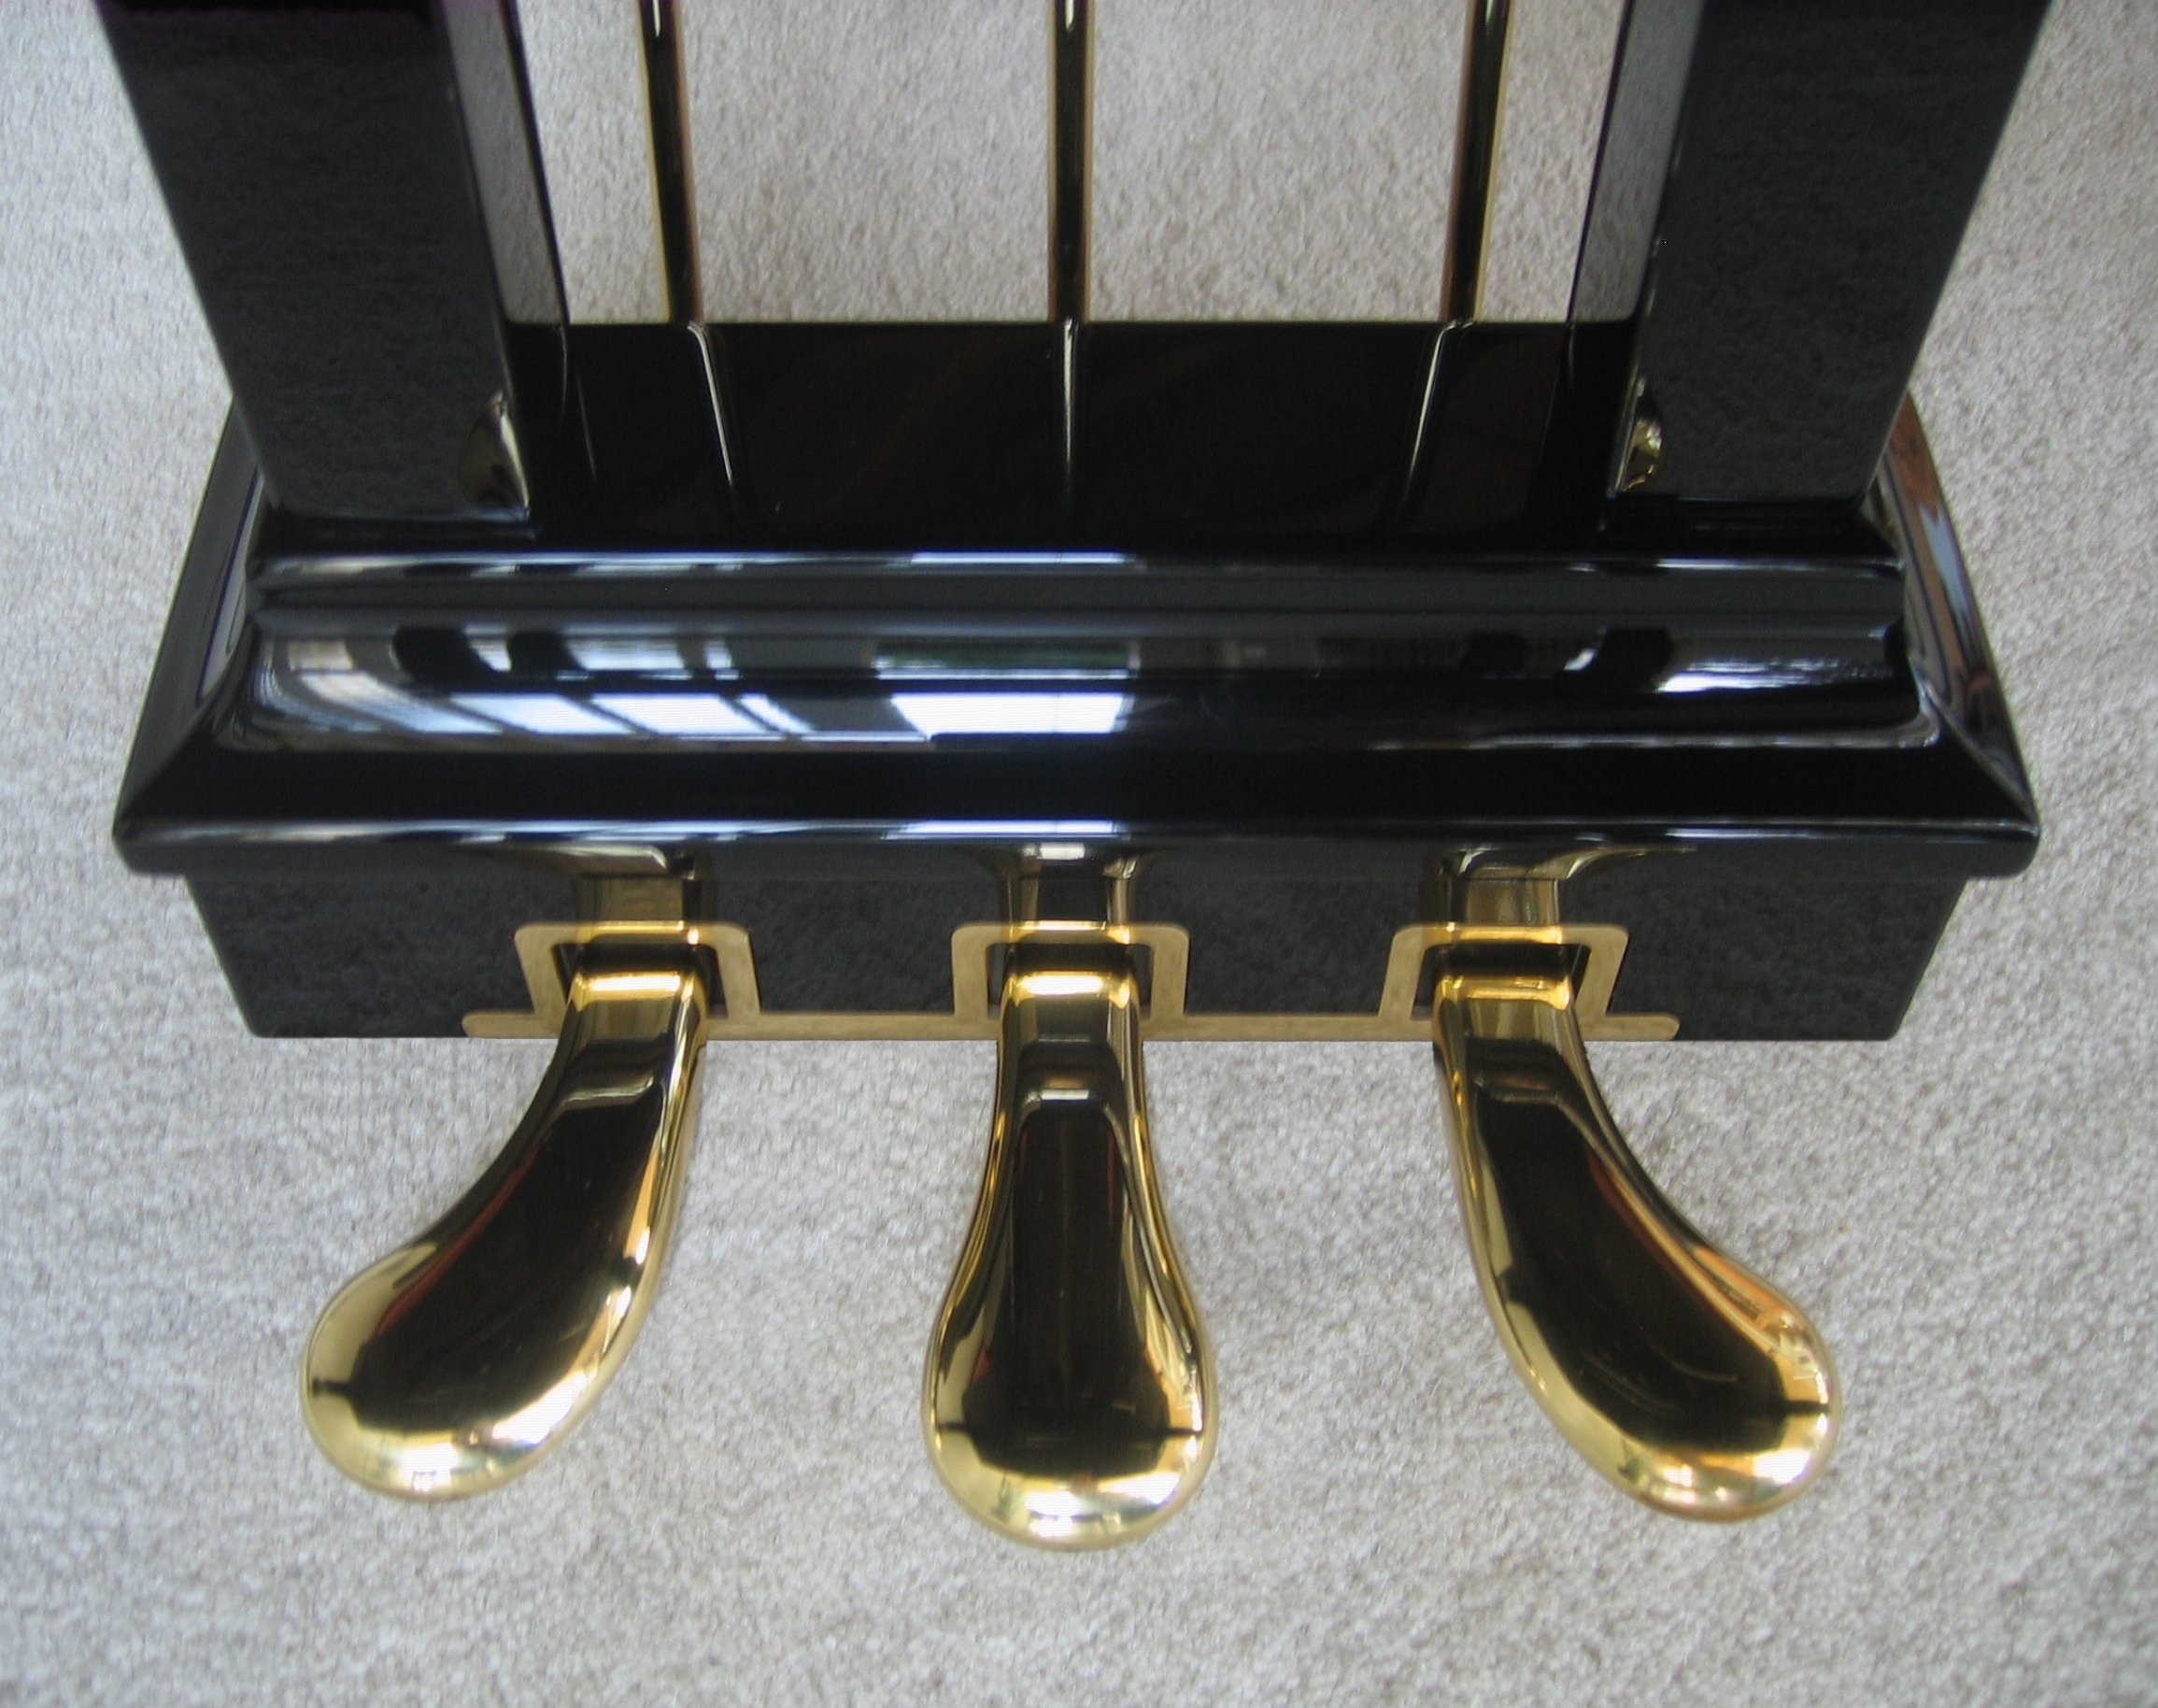 Names of Pedals on Piano Piano Pedals